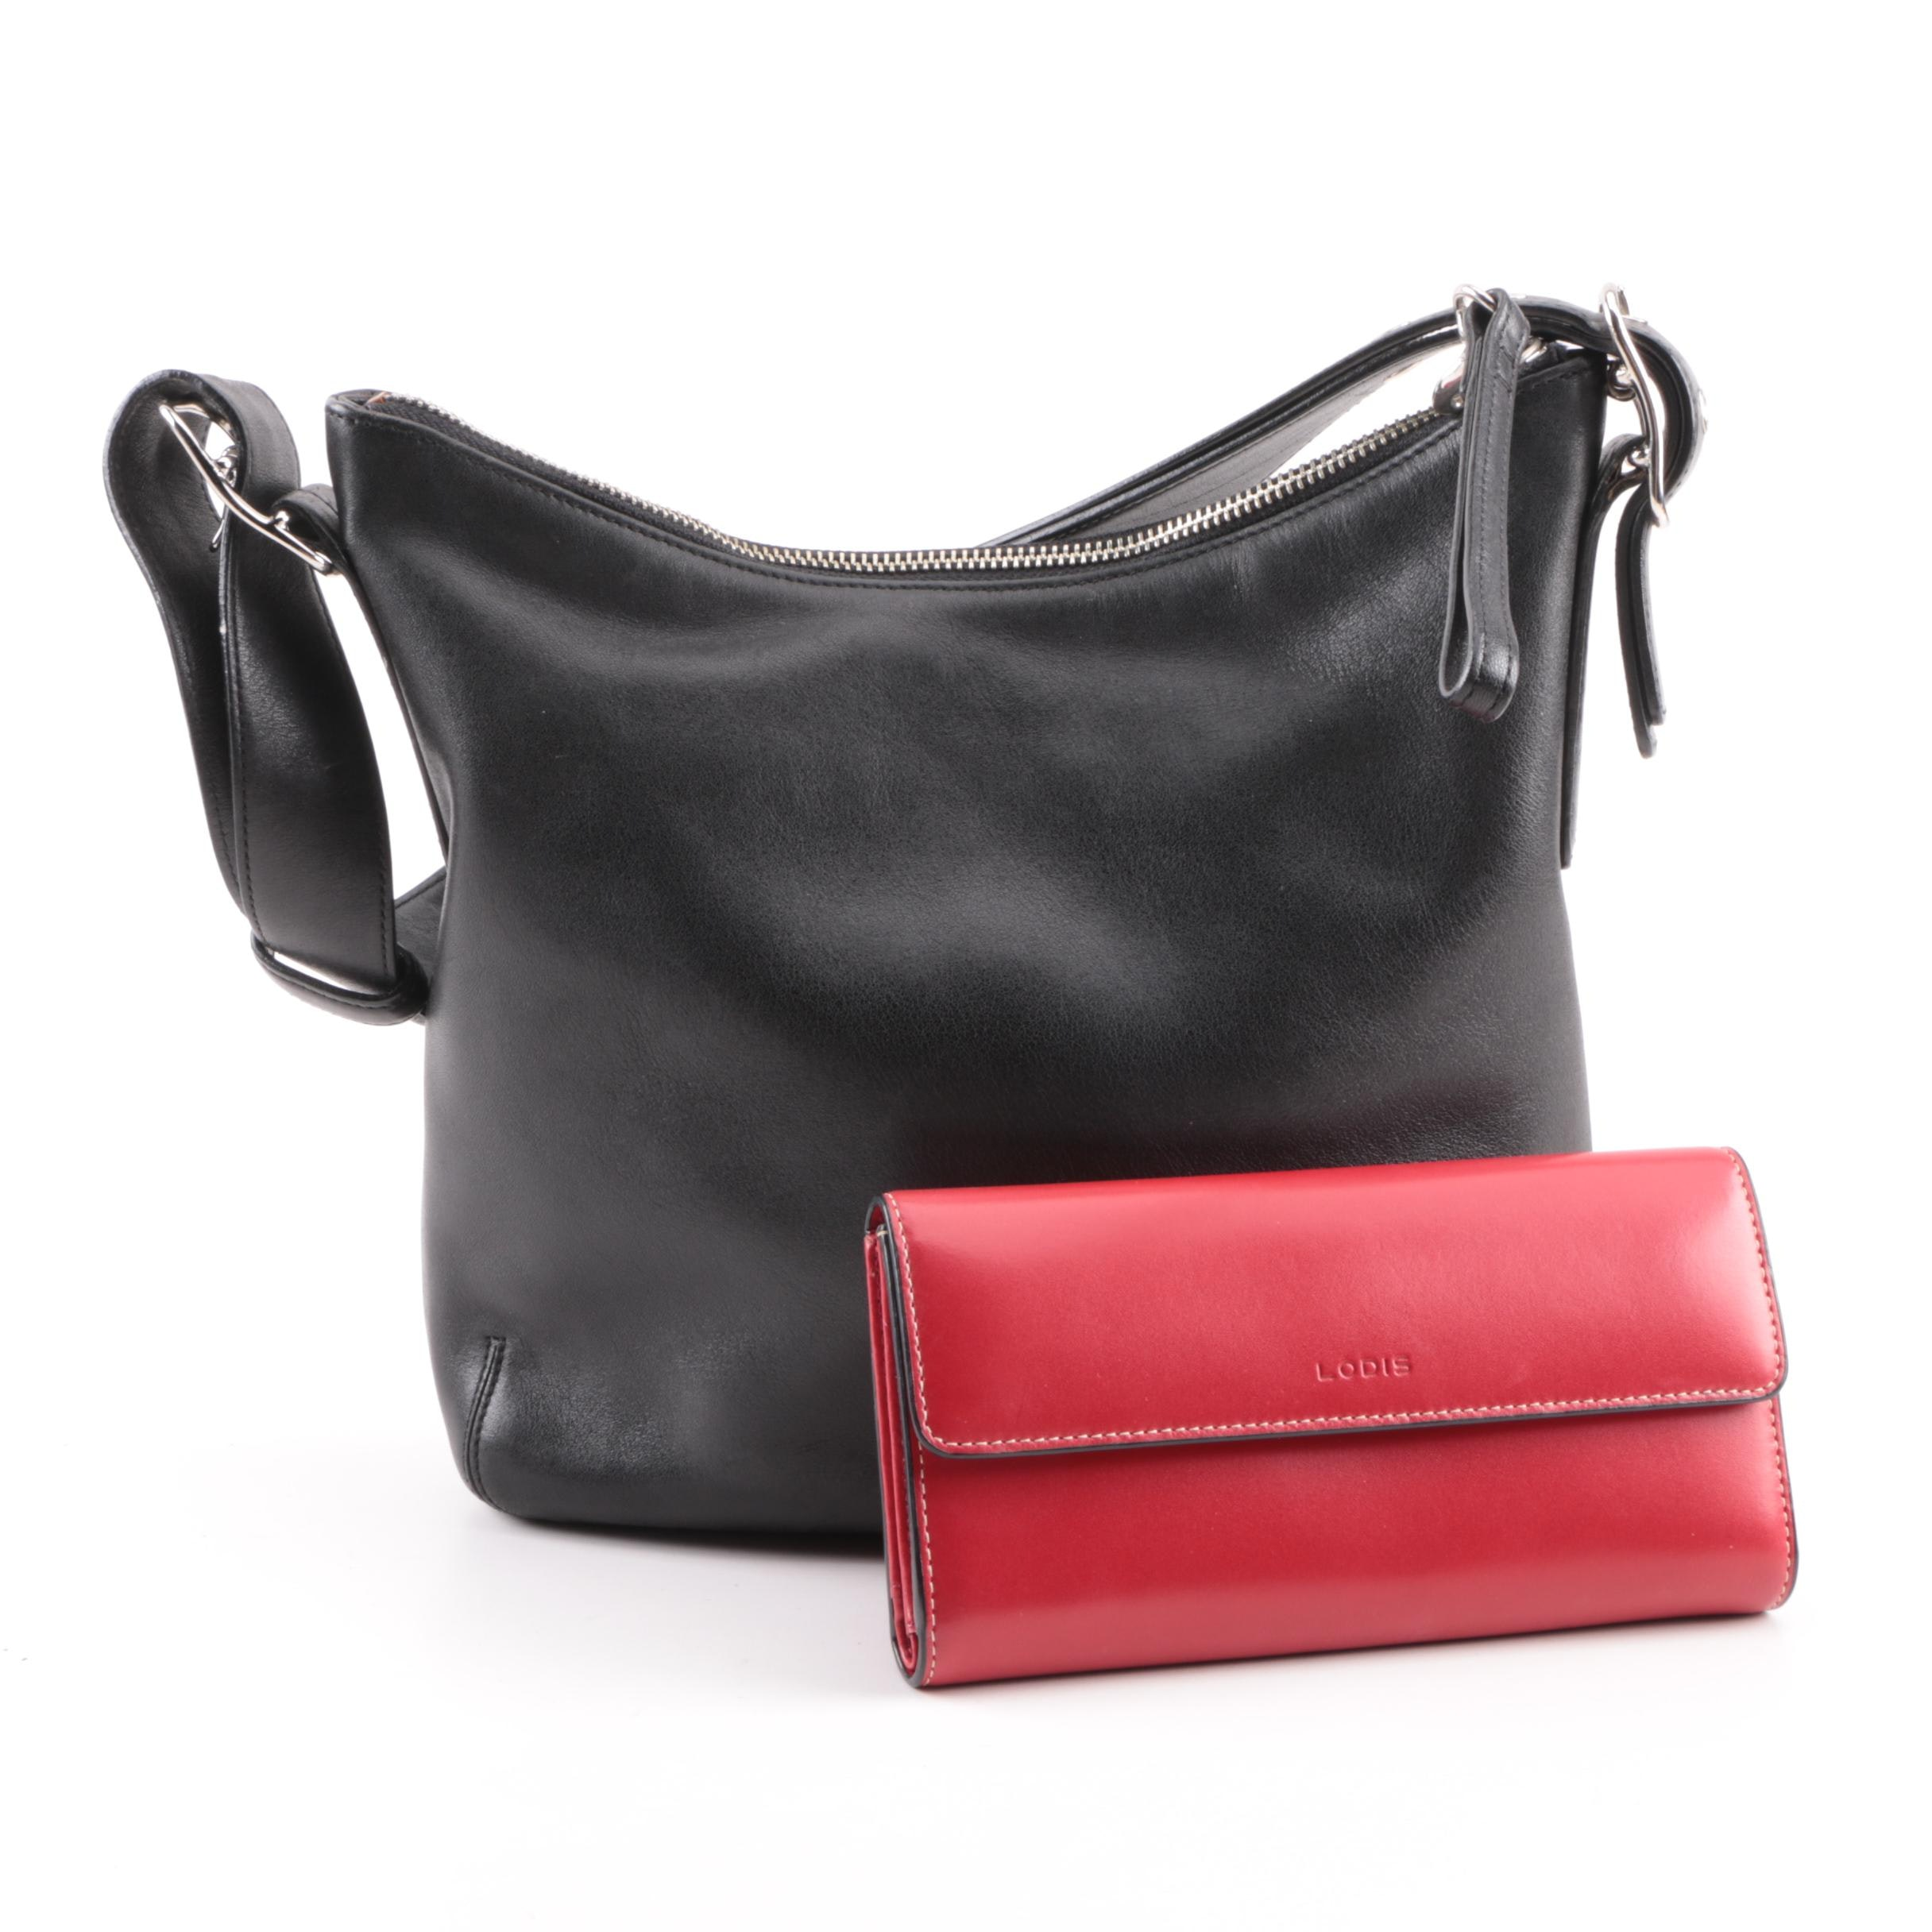 Coach Legacy Slim Black Leather Duffle with Lodis Red Leather Wallet